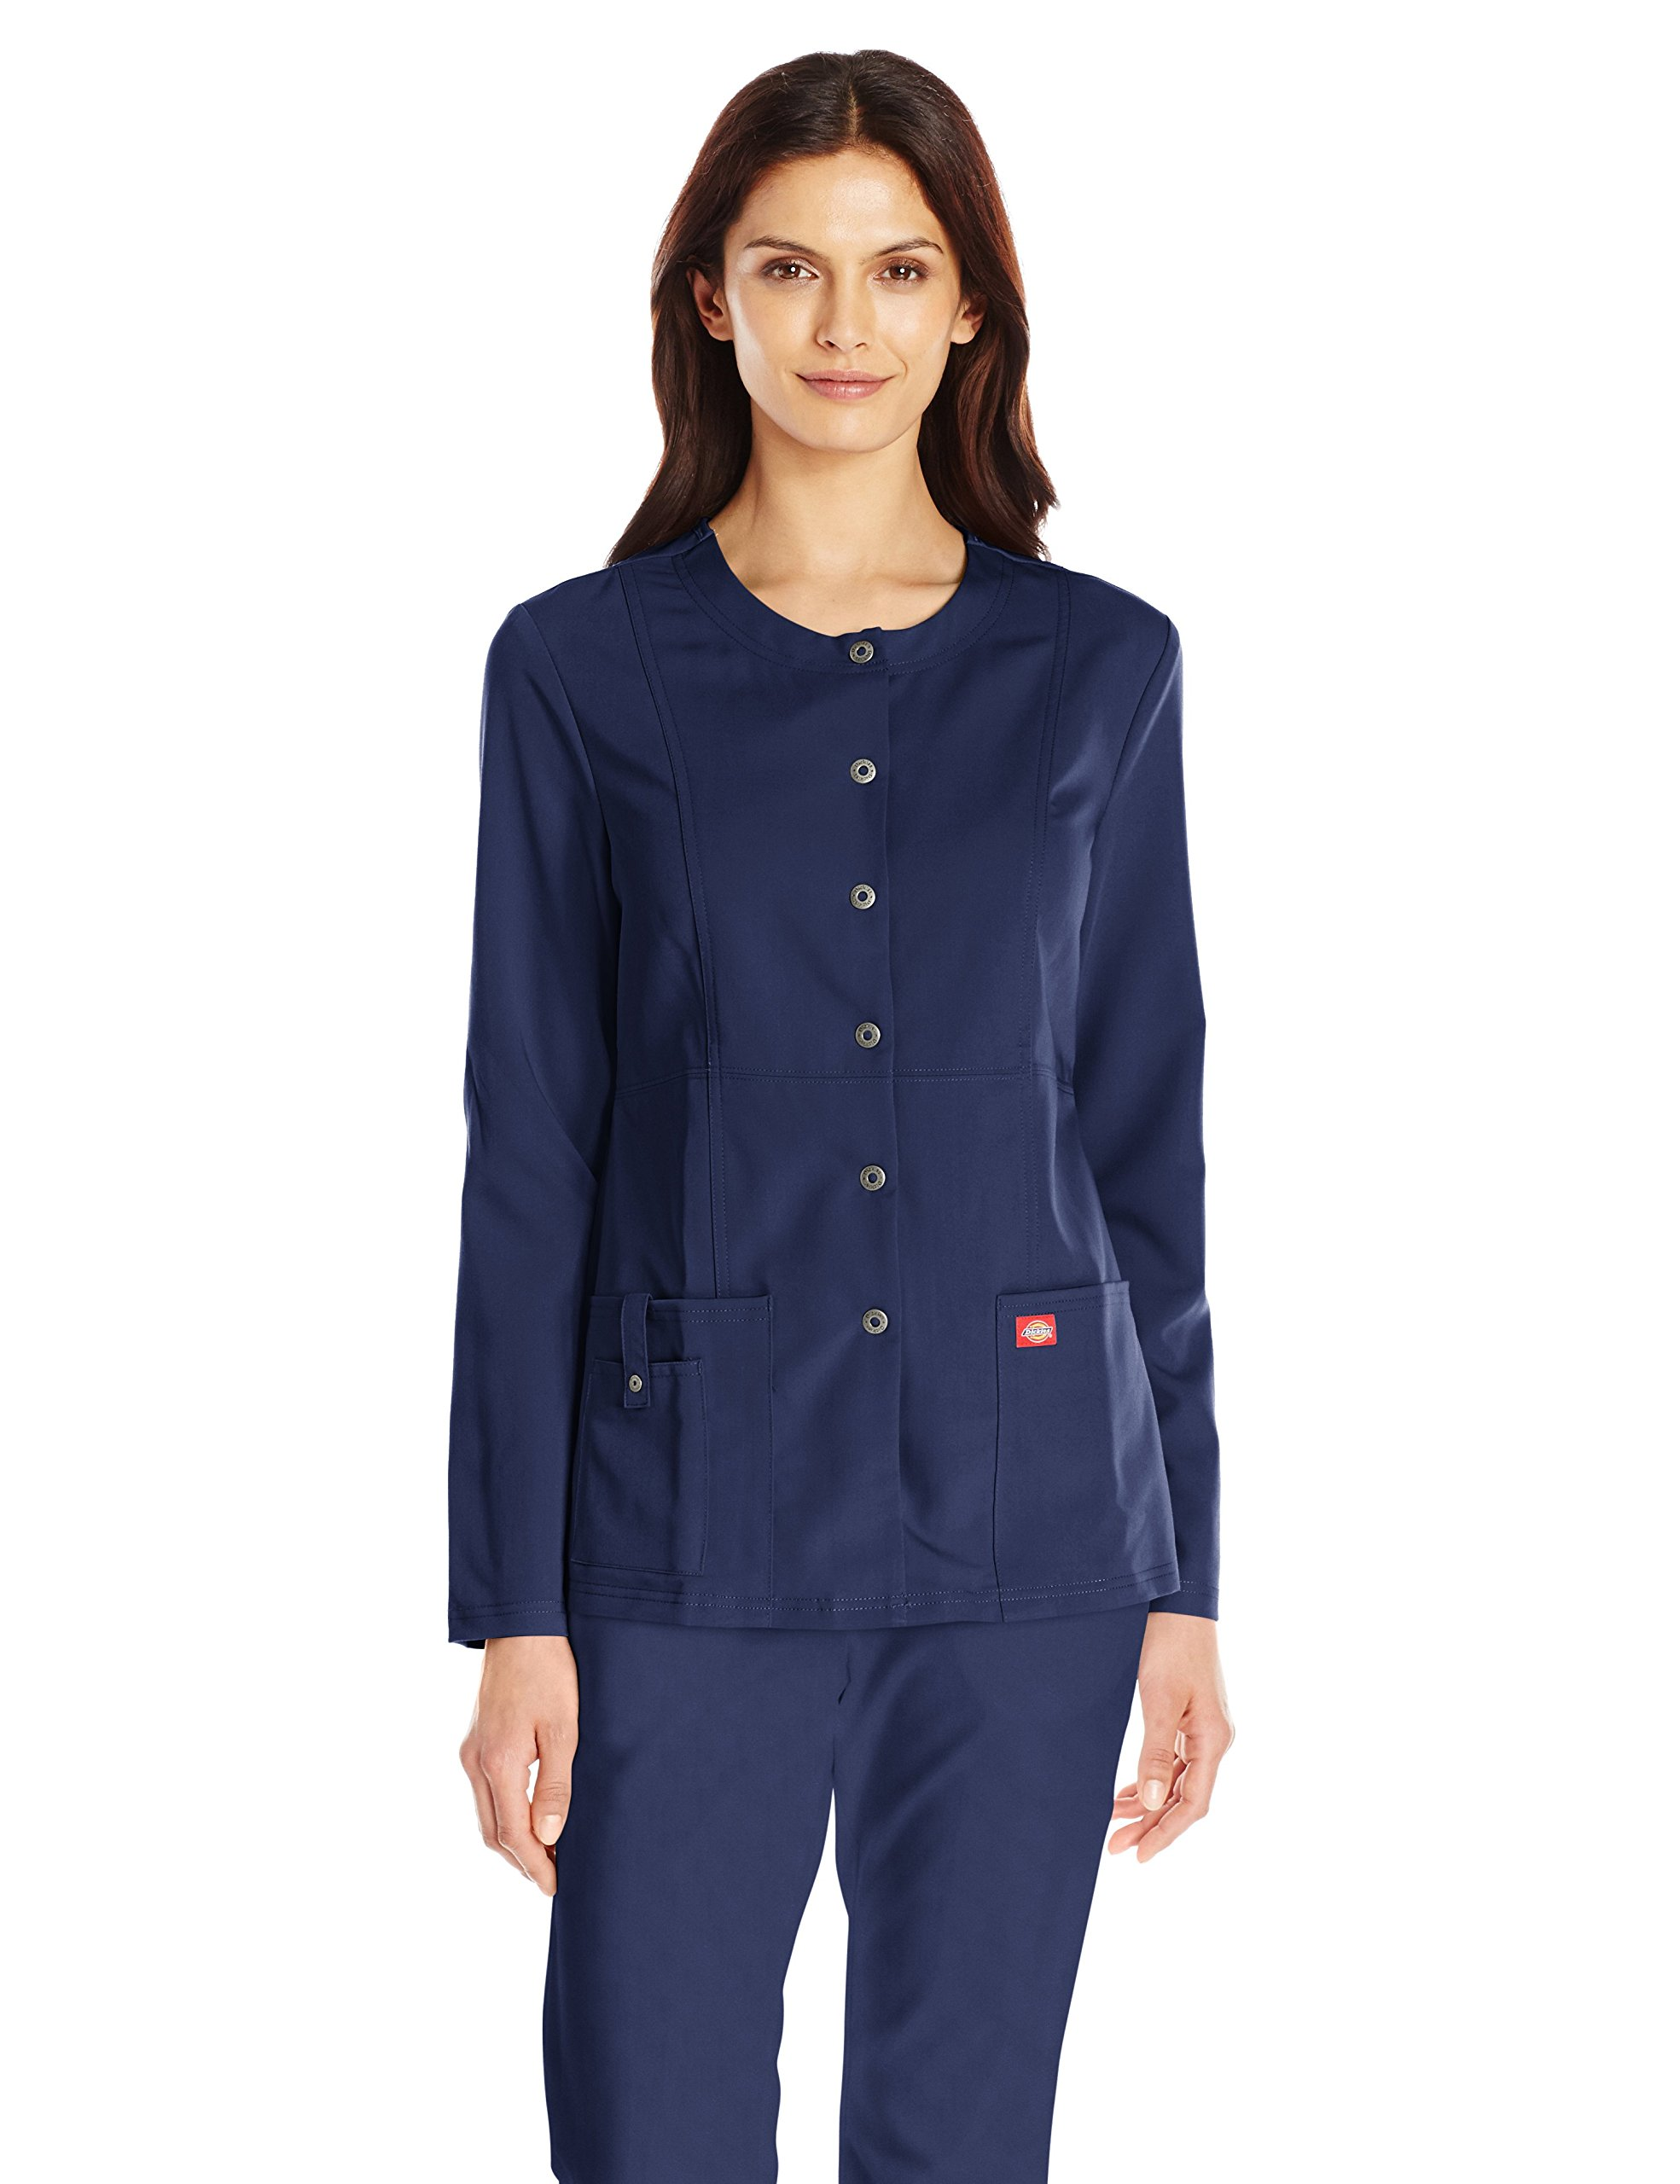 Dickies Women's Xtreme Stretch Crew Neck Snap Front Warm-up Jacket, Navy, X-Small